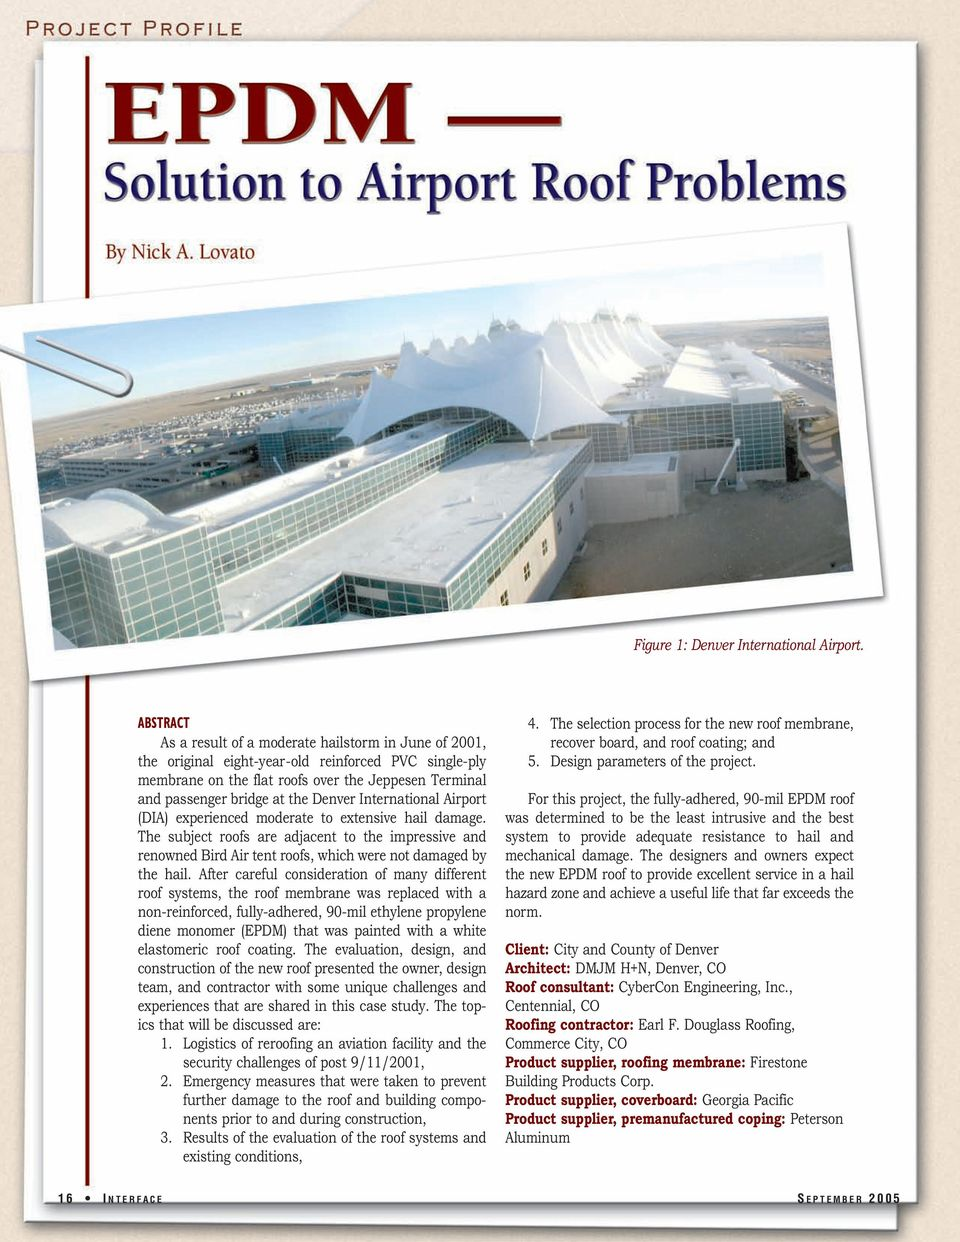 Denver International Airport (DIA) experienced moderate to extensive hail damage. The subject roofs are adjacent to the impressive and renowned Bird Air tent roofs, which were not damaged by the hail.